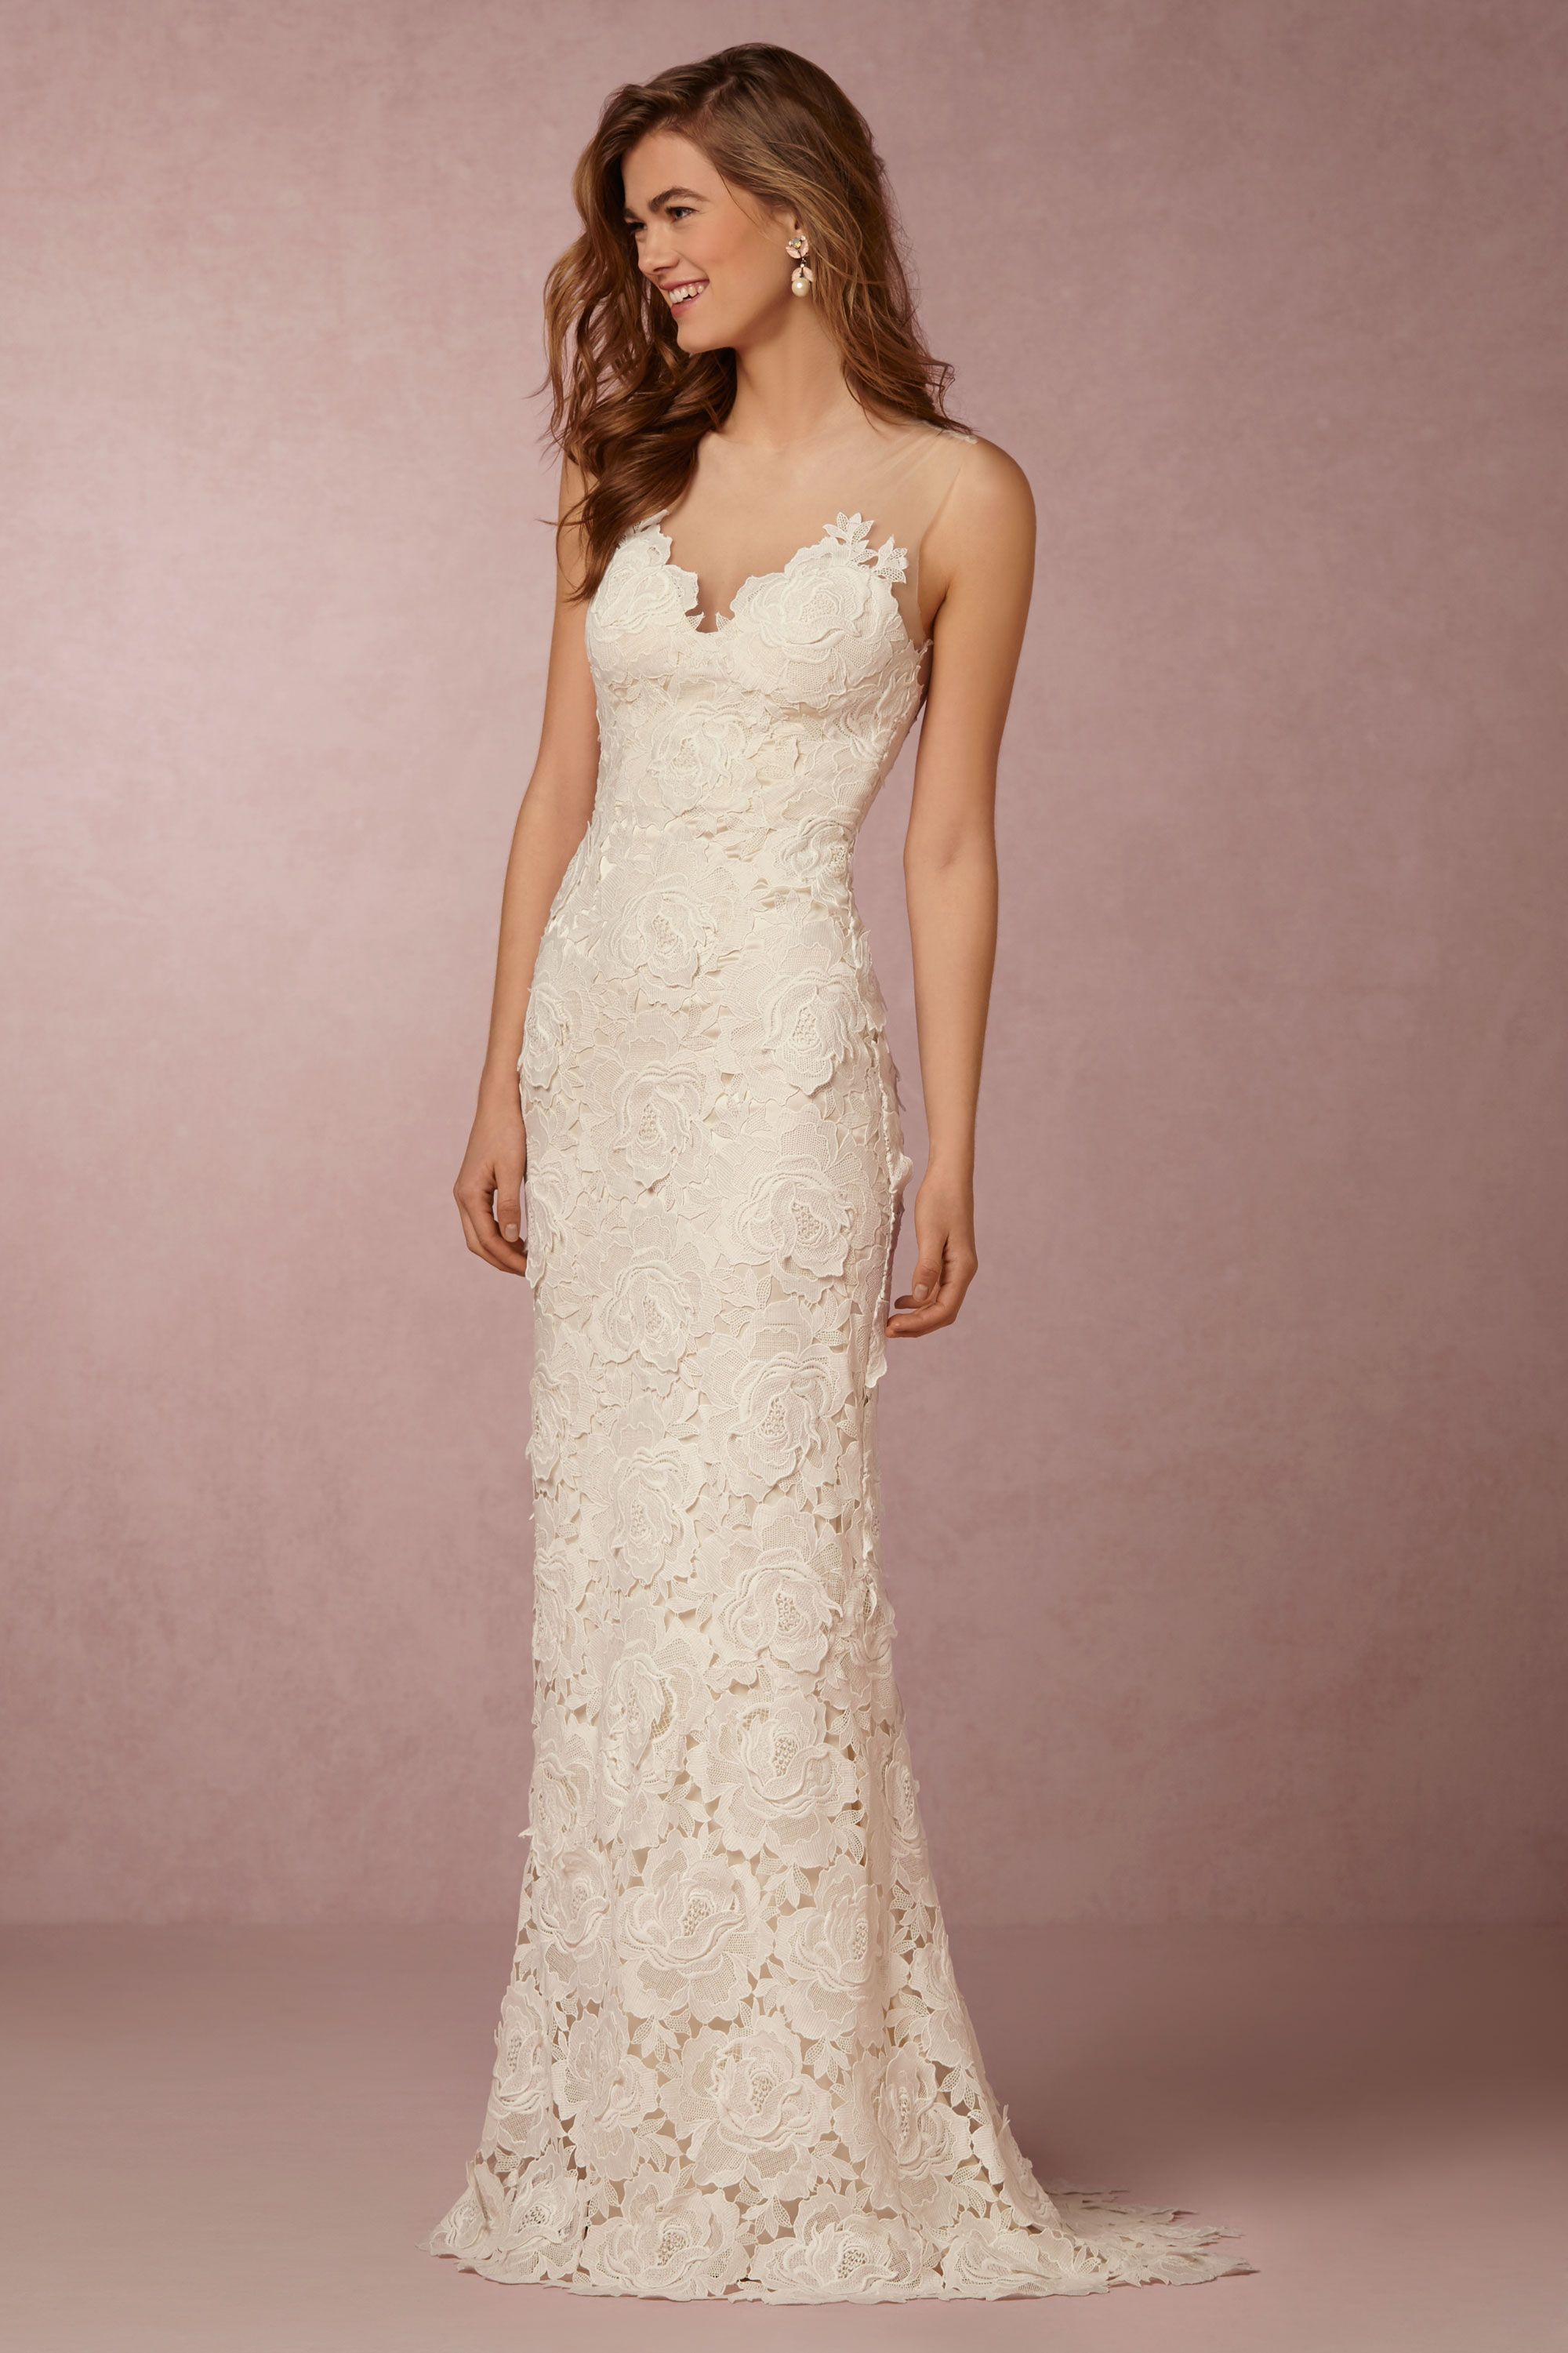 Lace Wedding Dress With A Bold Floral Motif The Figure